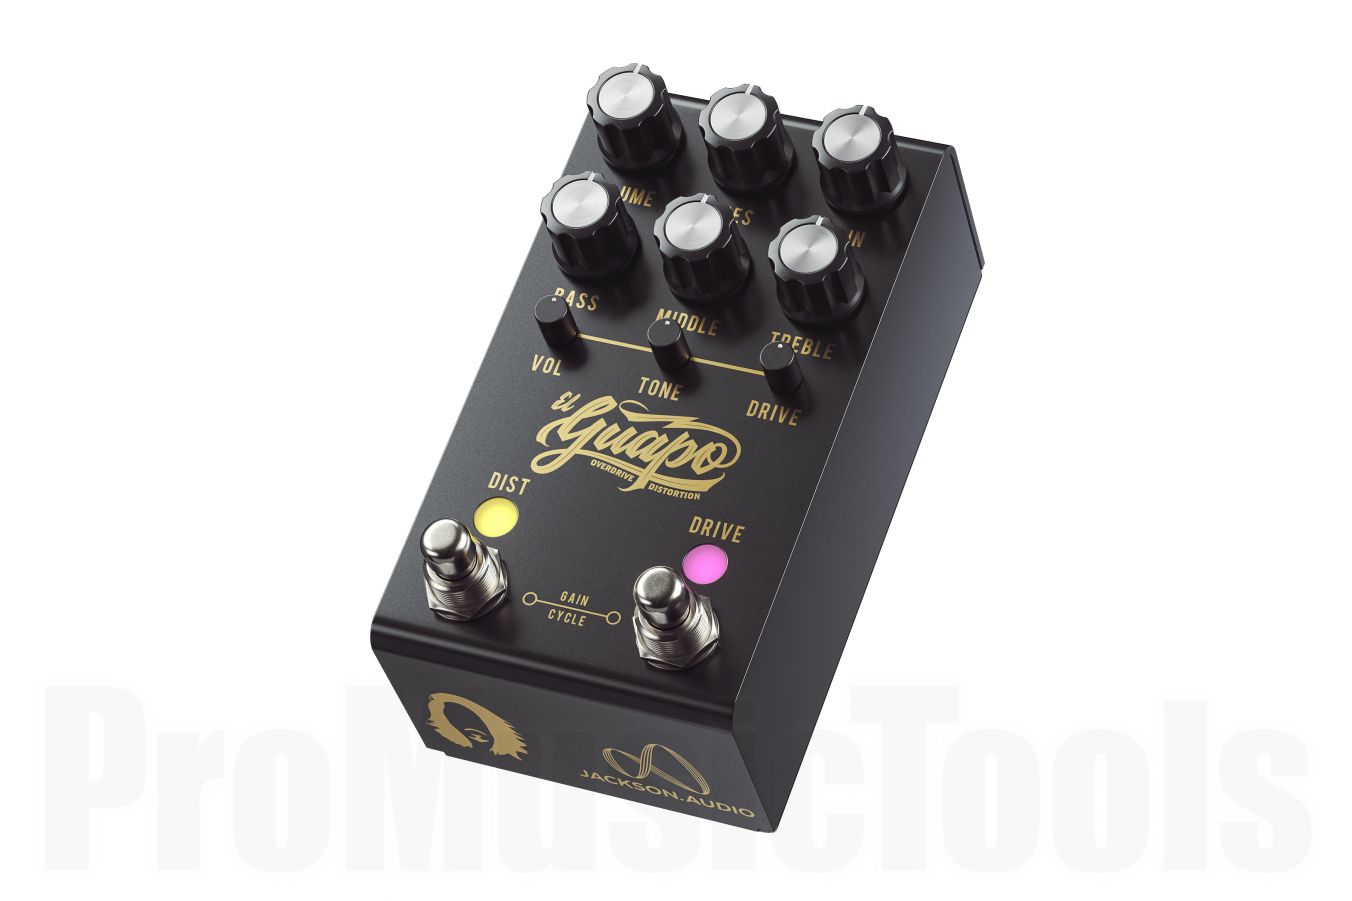 Jackson Audio El Guapo - Mateus Asato Signature Overdrive & Distortion